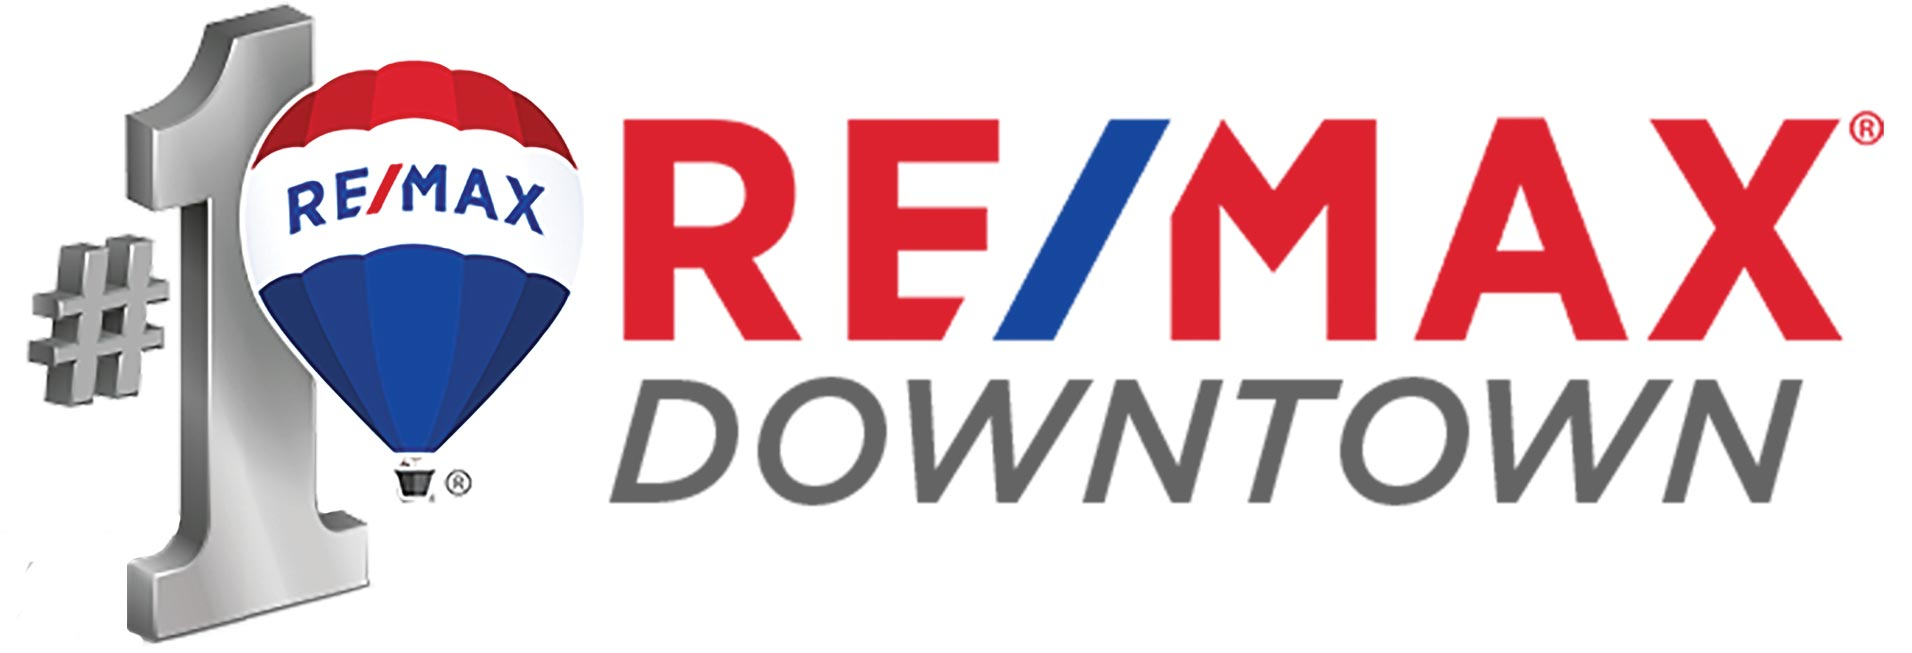 RE/MAX DowntownMAX Downtown Orlando Real Estate